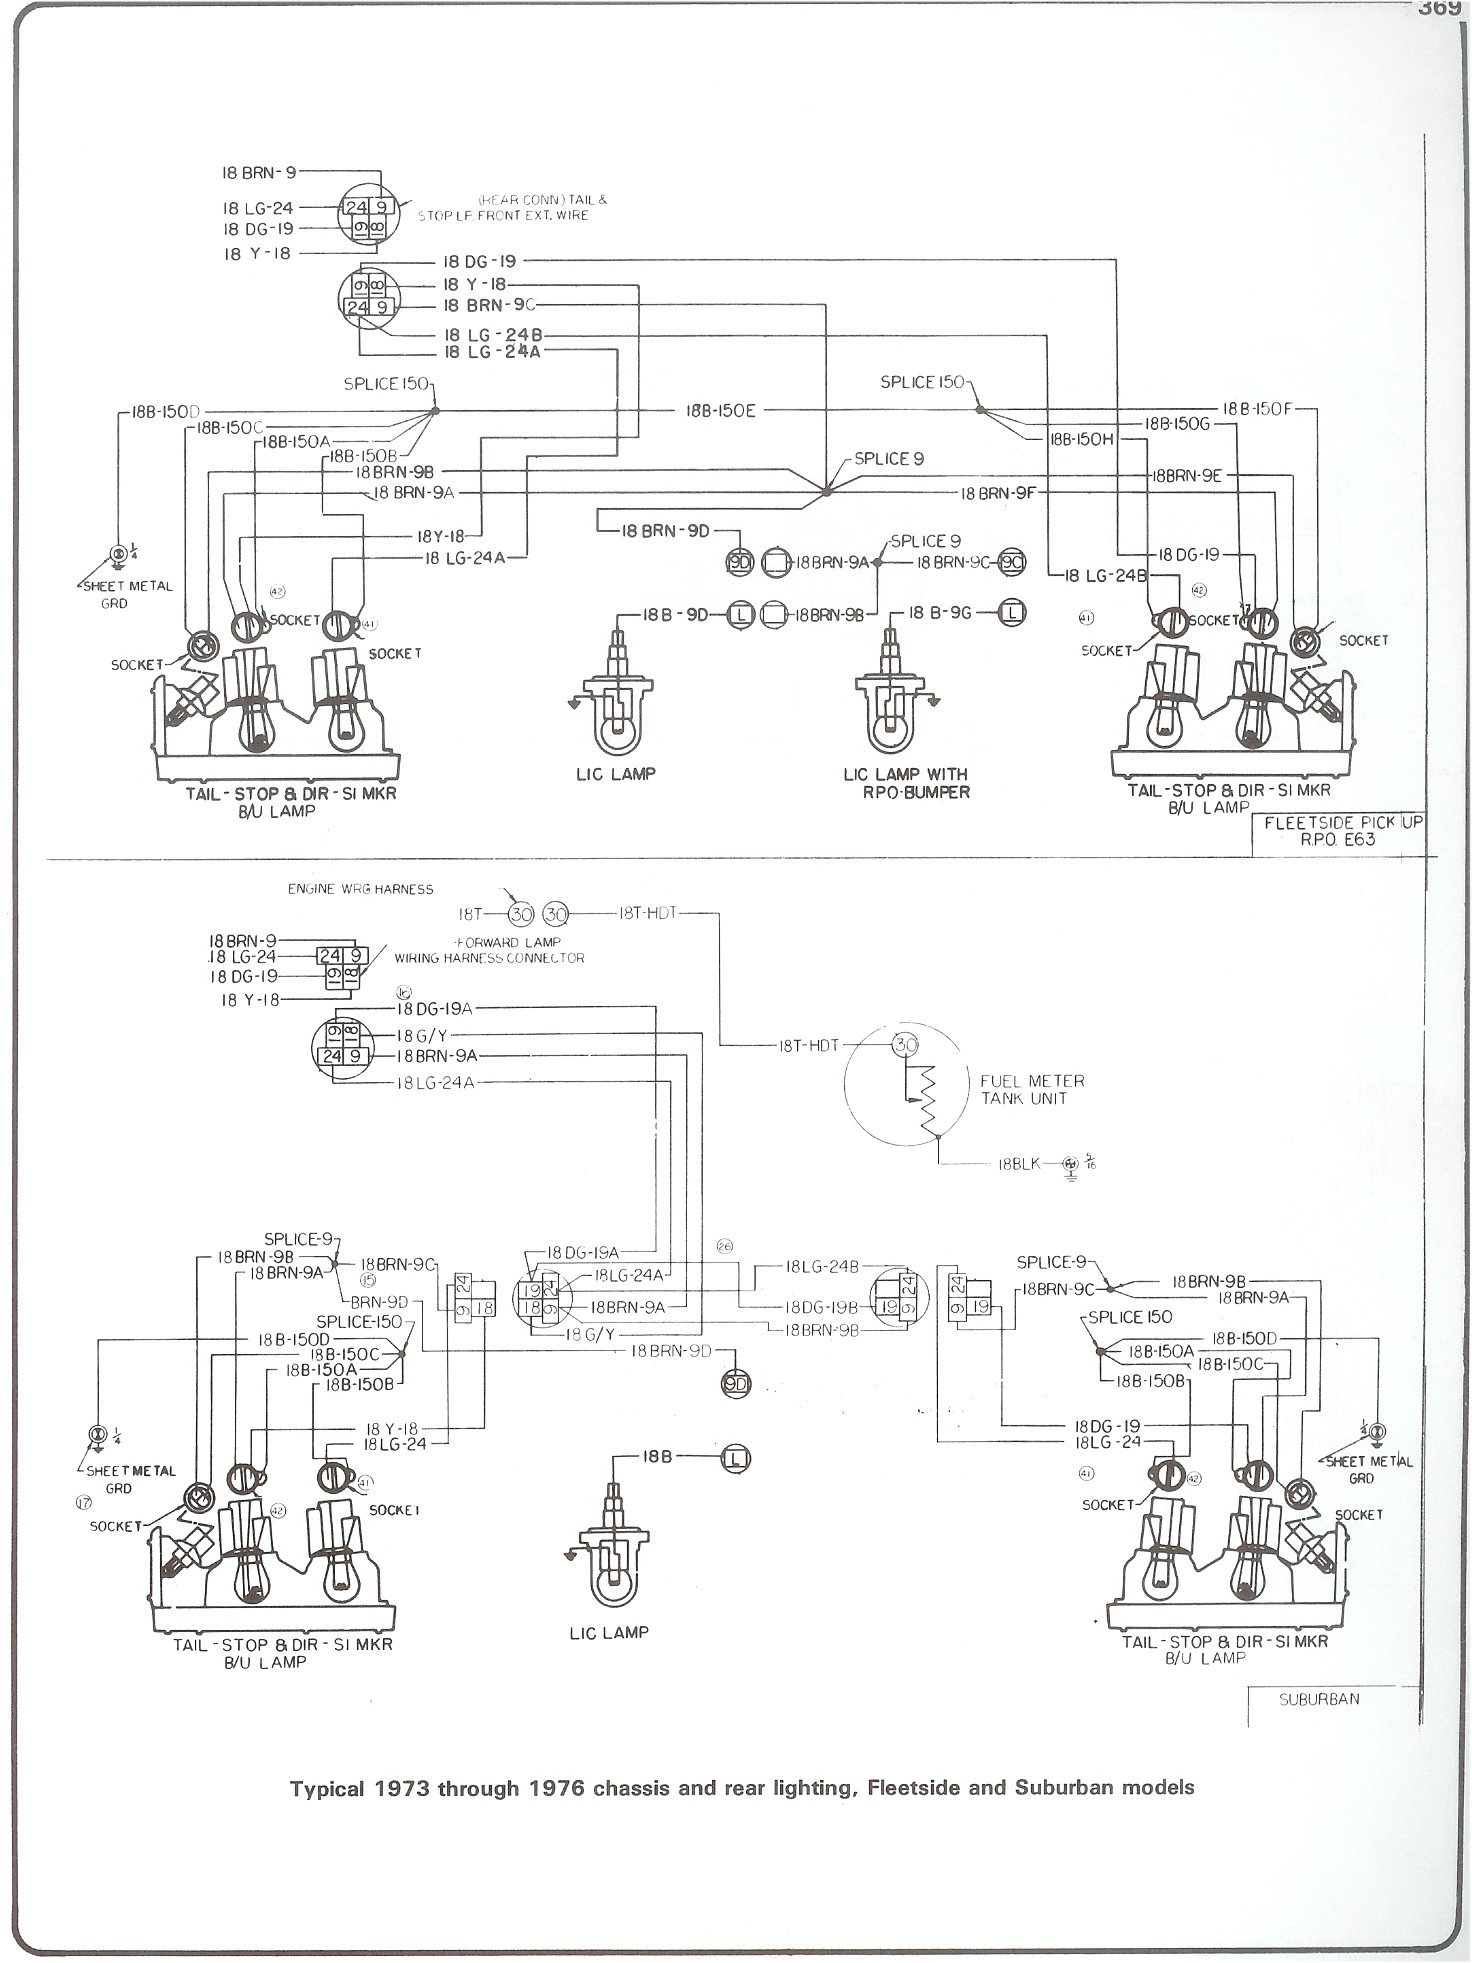 hight resolution of 1984 k10 rear wiring harness manual e bookcomplete 73 87 wiring diagrams73 76 chassis rear lighting